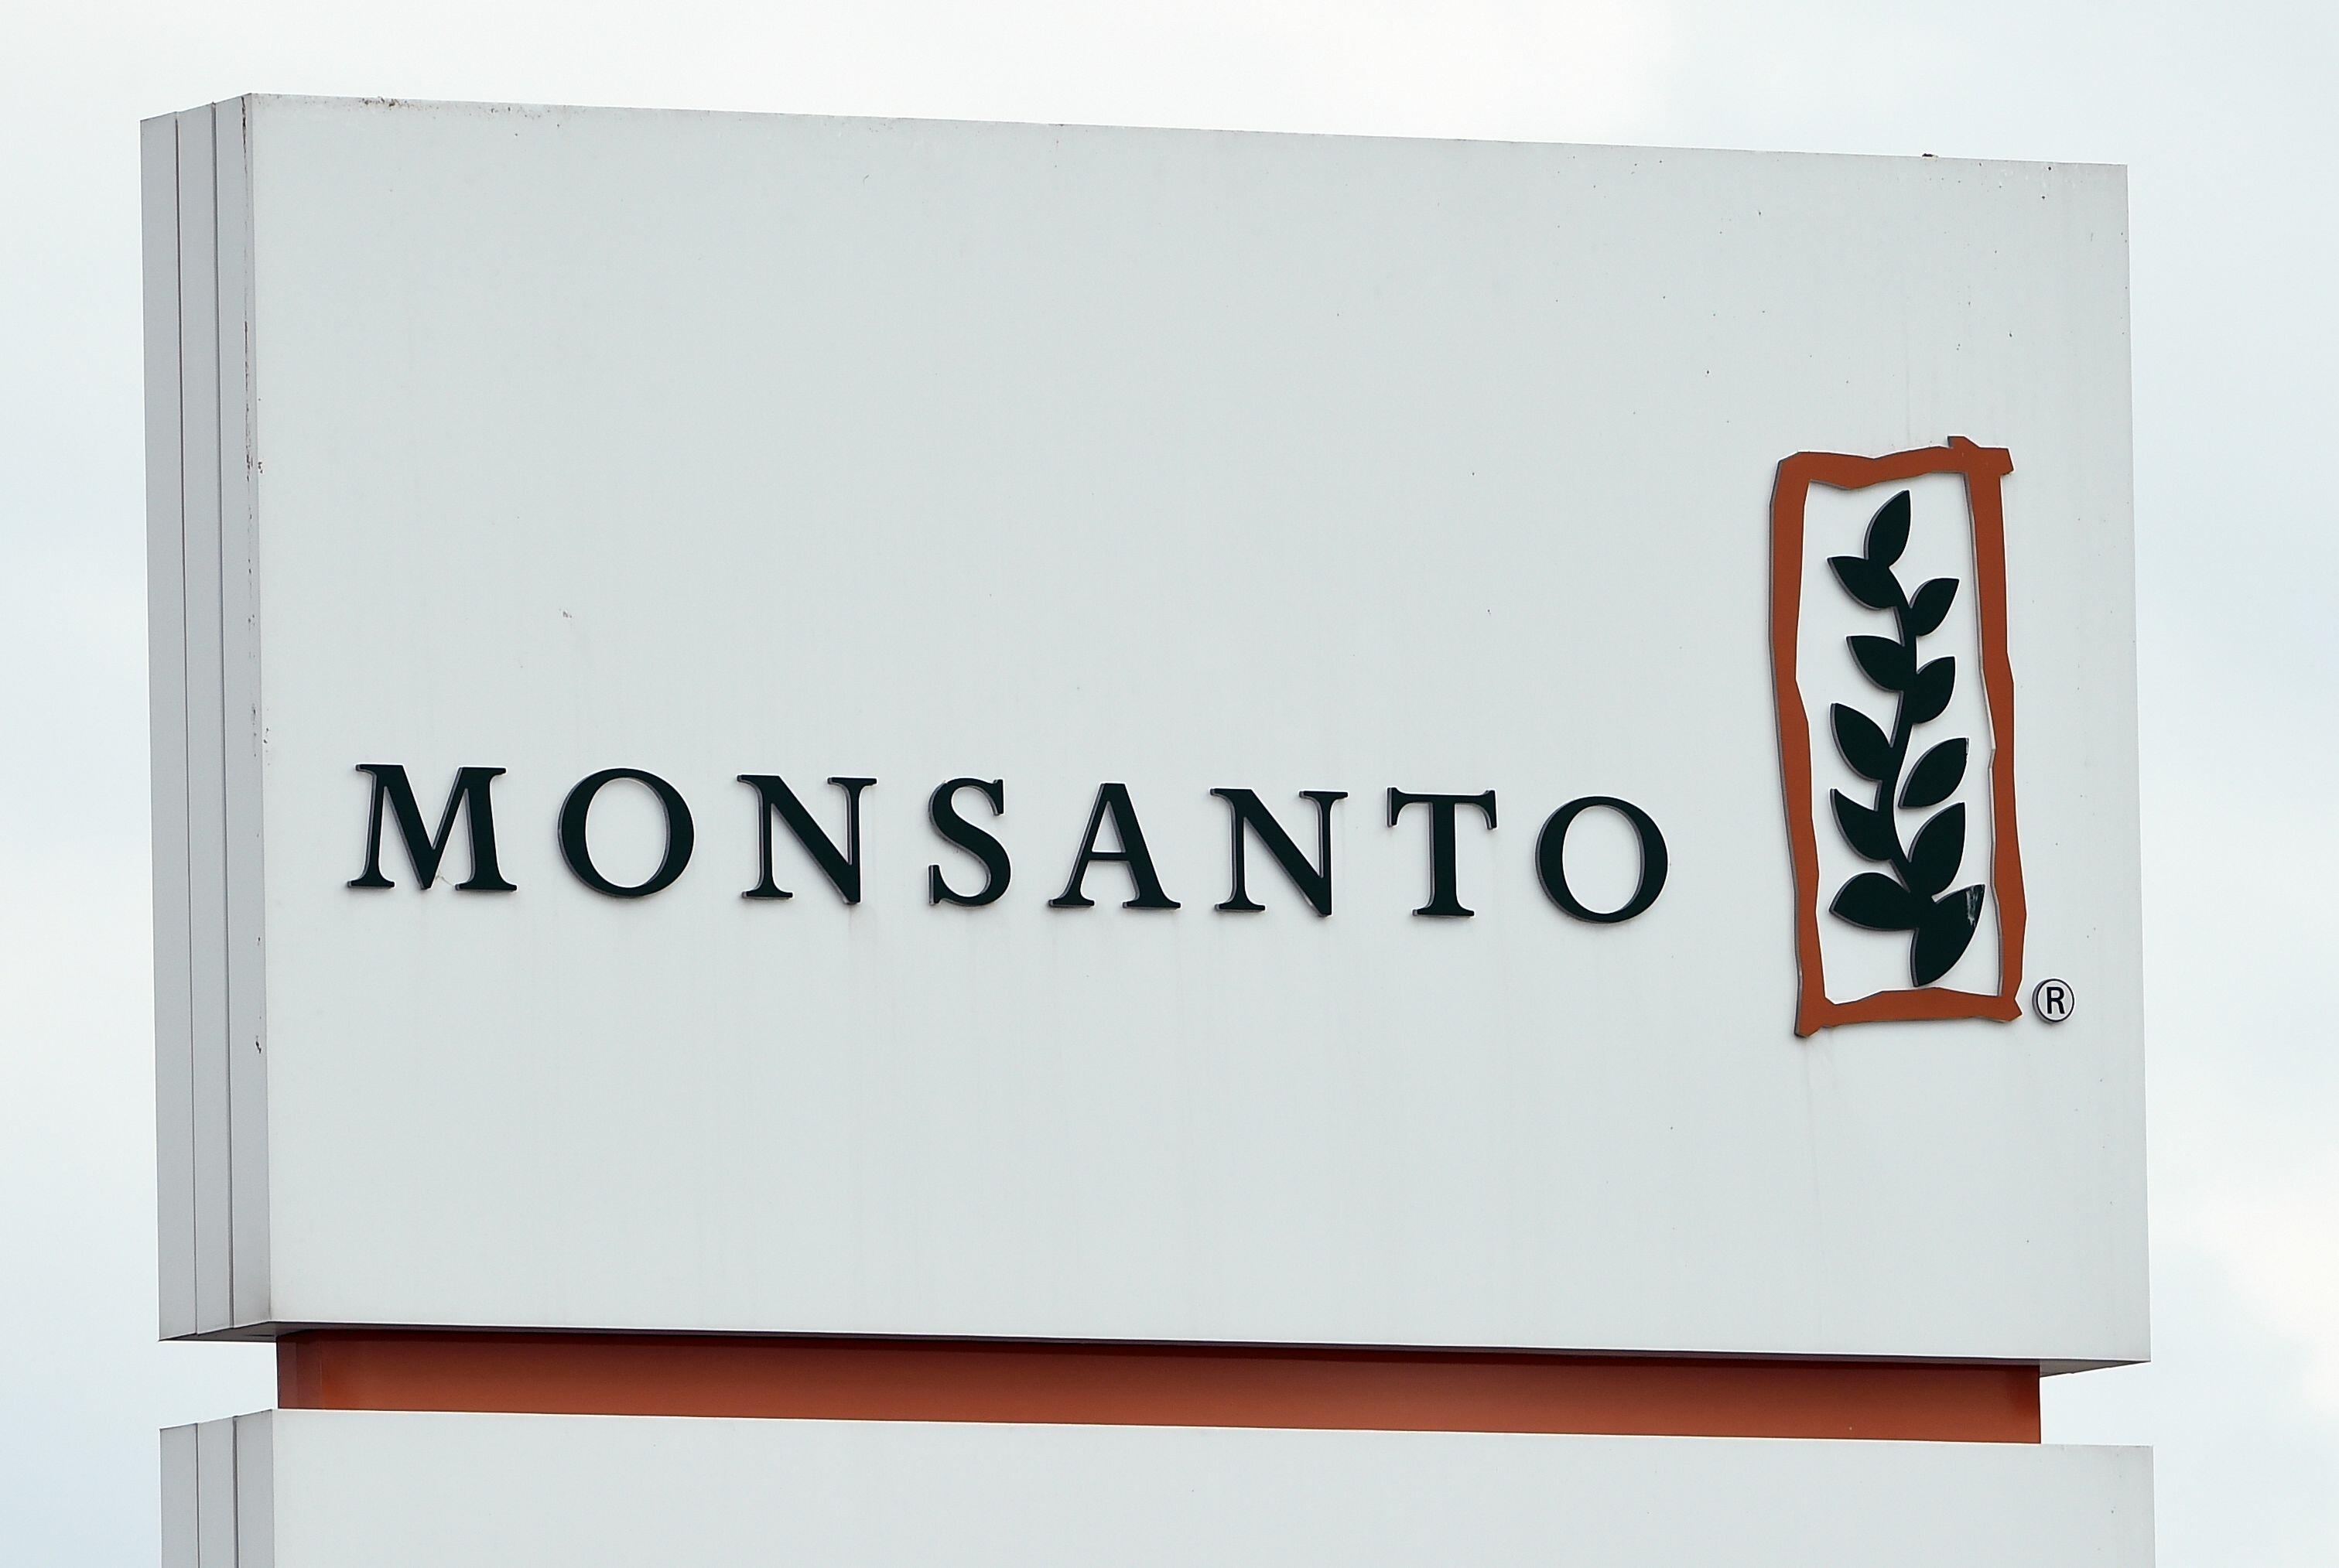 how should monsanto manage the potential Some of monsanto's actions should considered moral temptation 2 compare the benefits of growing gm seeds for crops with the potential negative consequences of using them growing gm seeds for crops can have its benefits as in can help the farmers with better crops and fields.